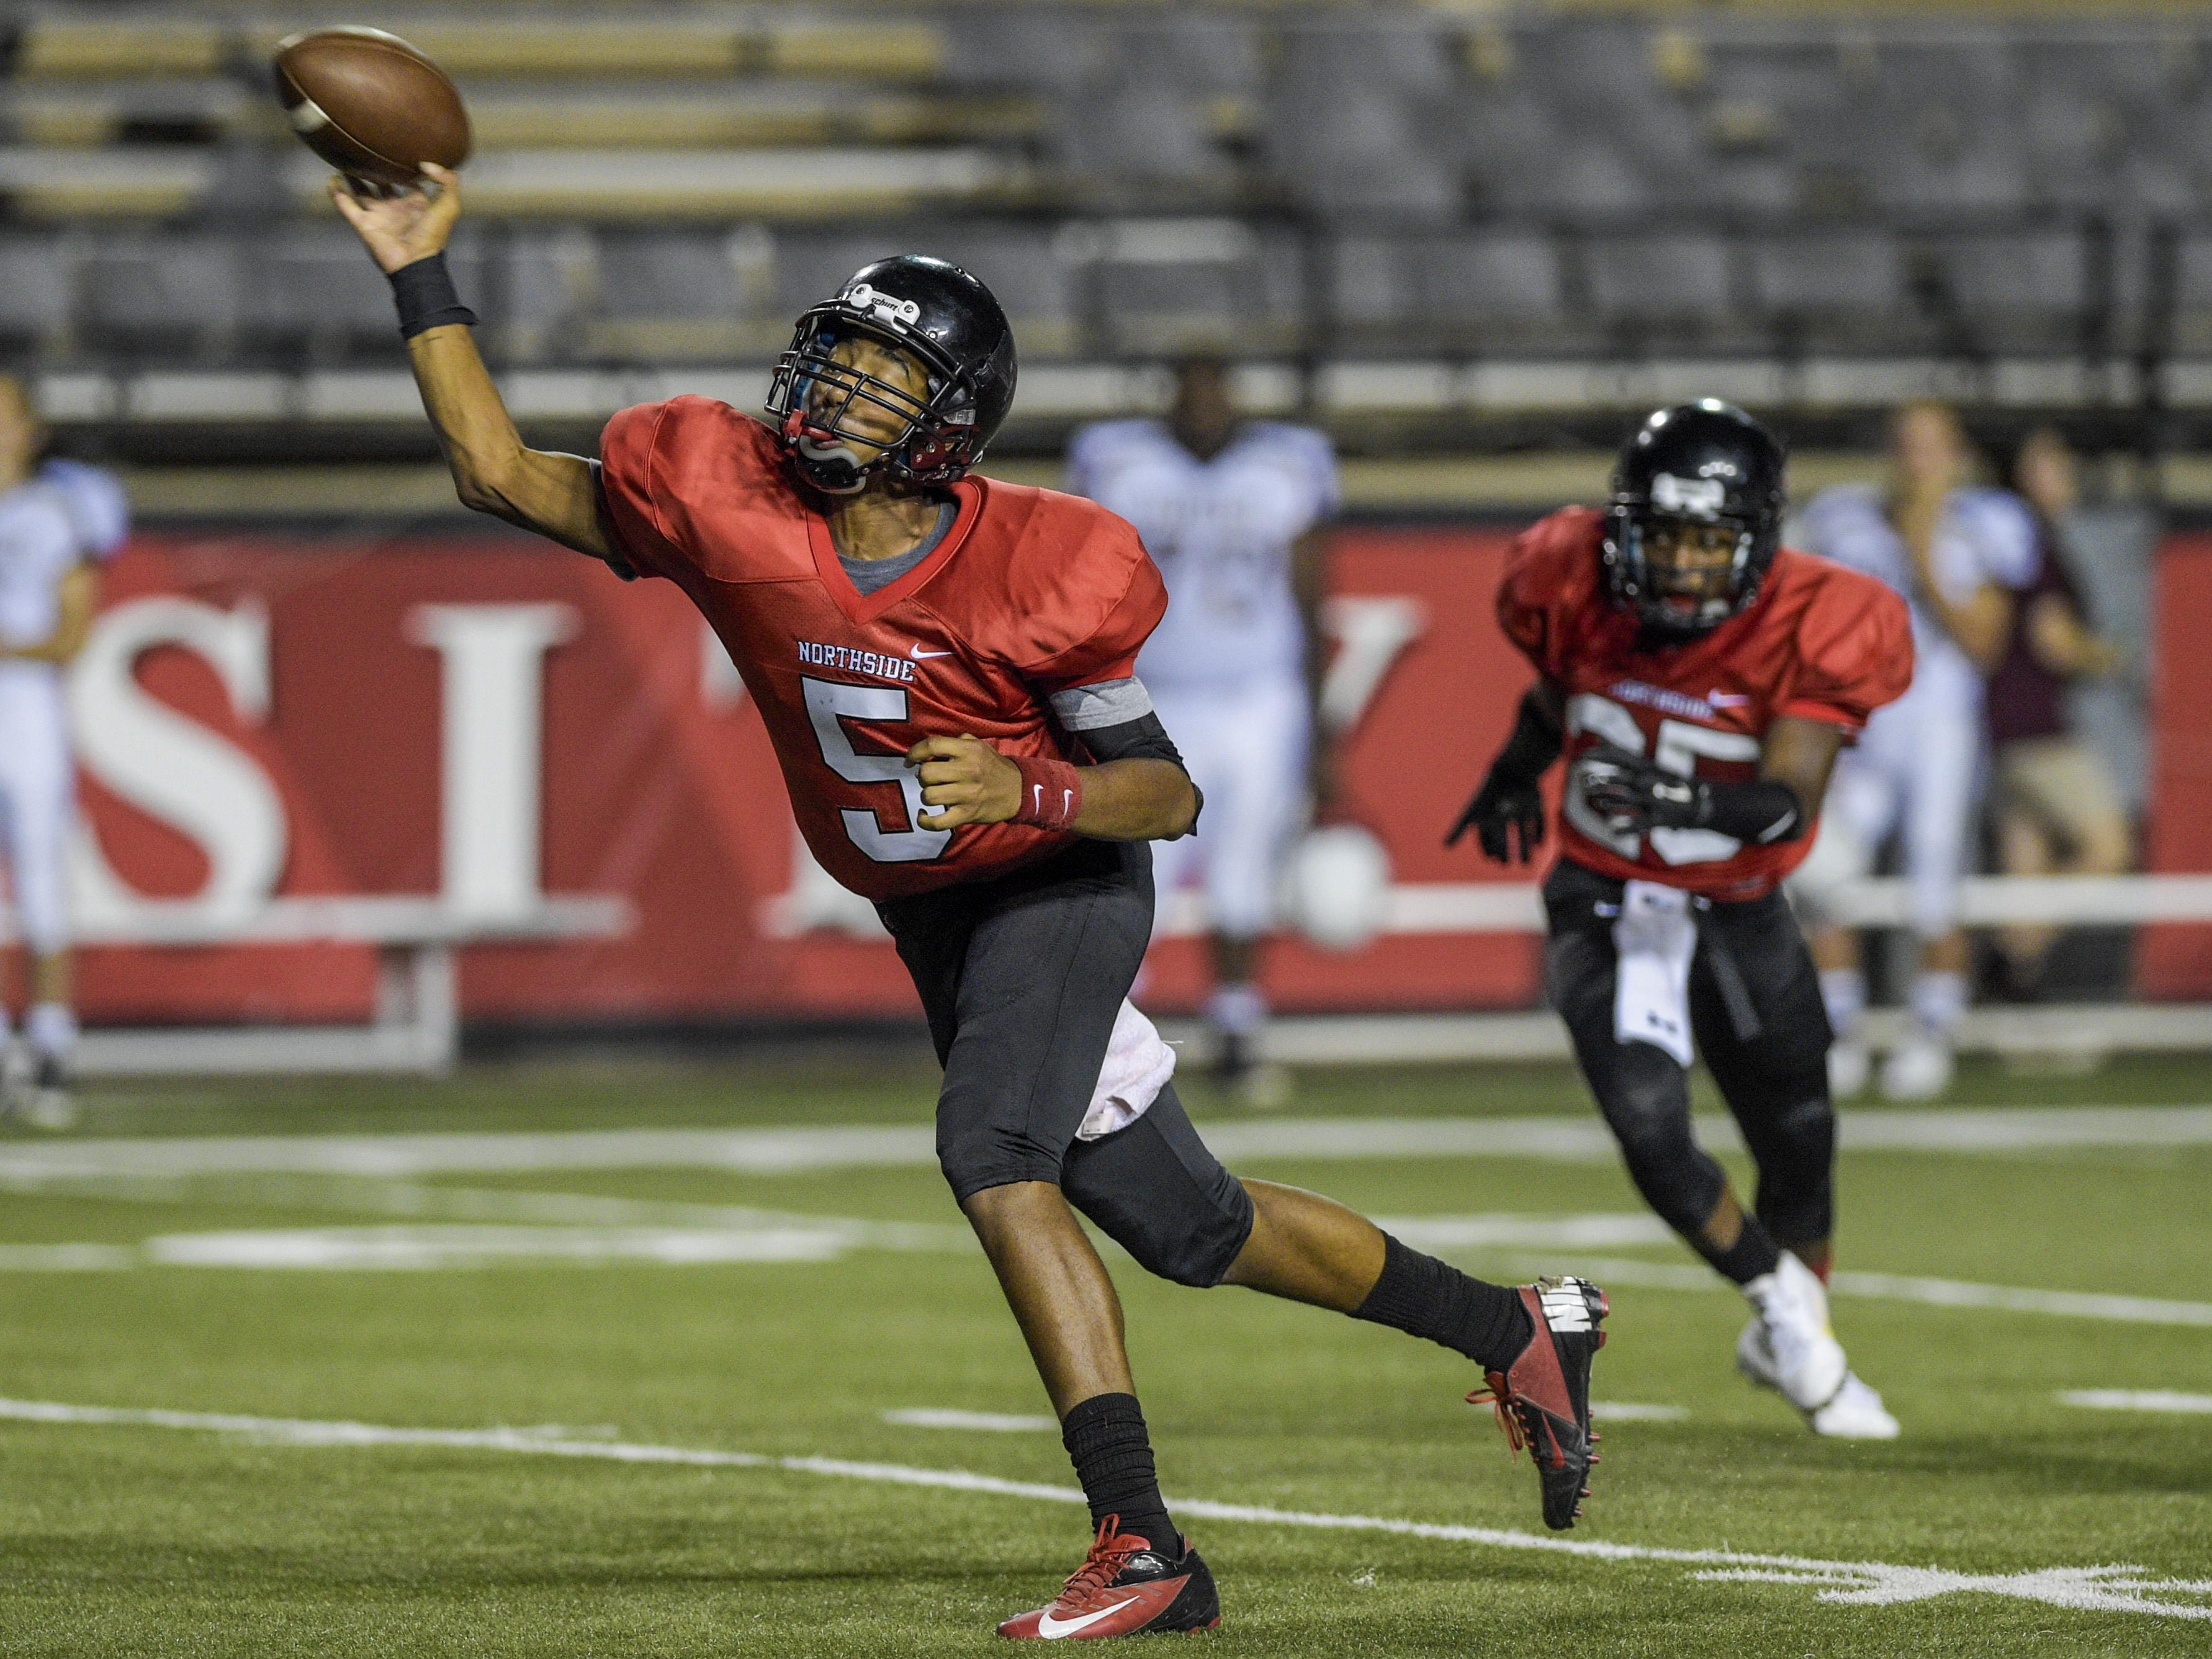 Northside quarterback Markaylon Boyd (5) showed his potential with a touchdown pass during the 12-6 win over Jennings in the jamboree.